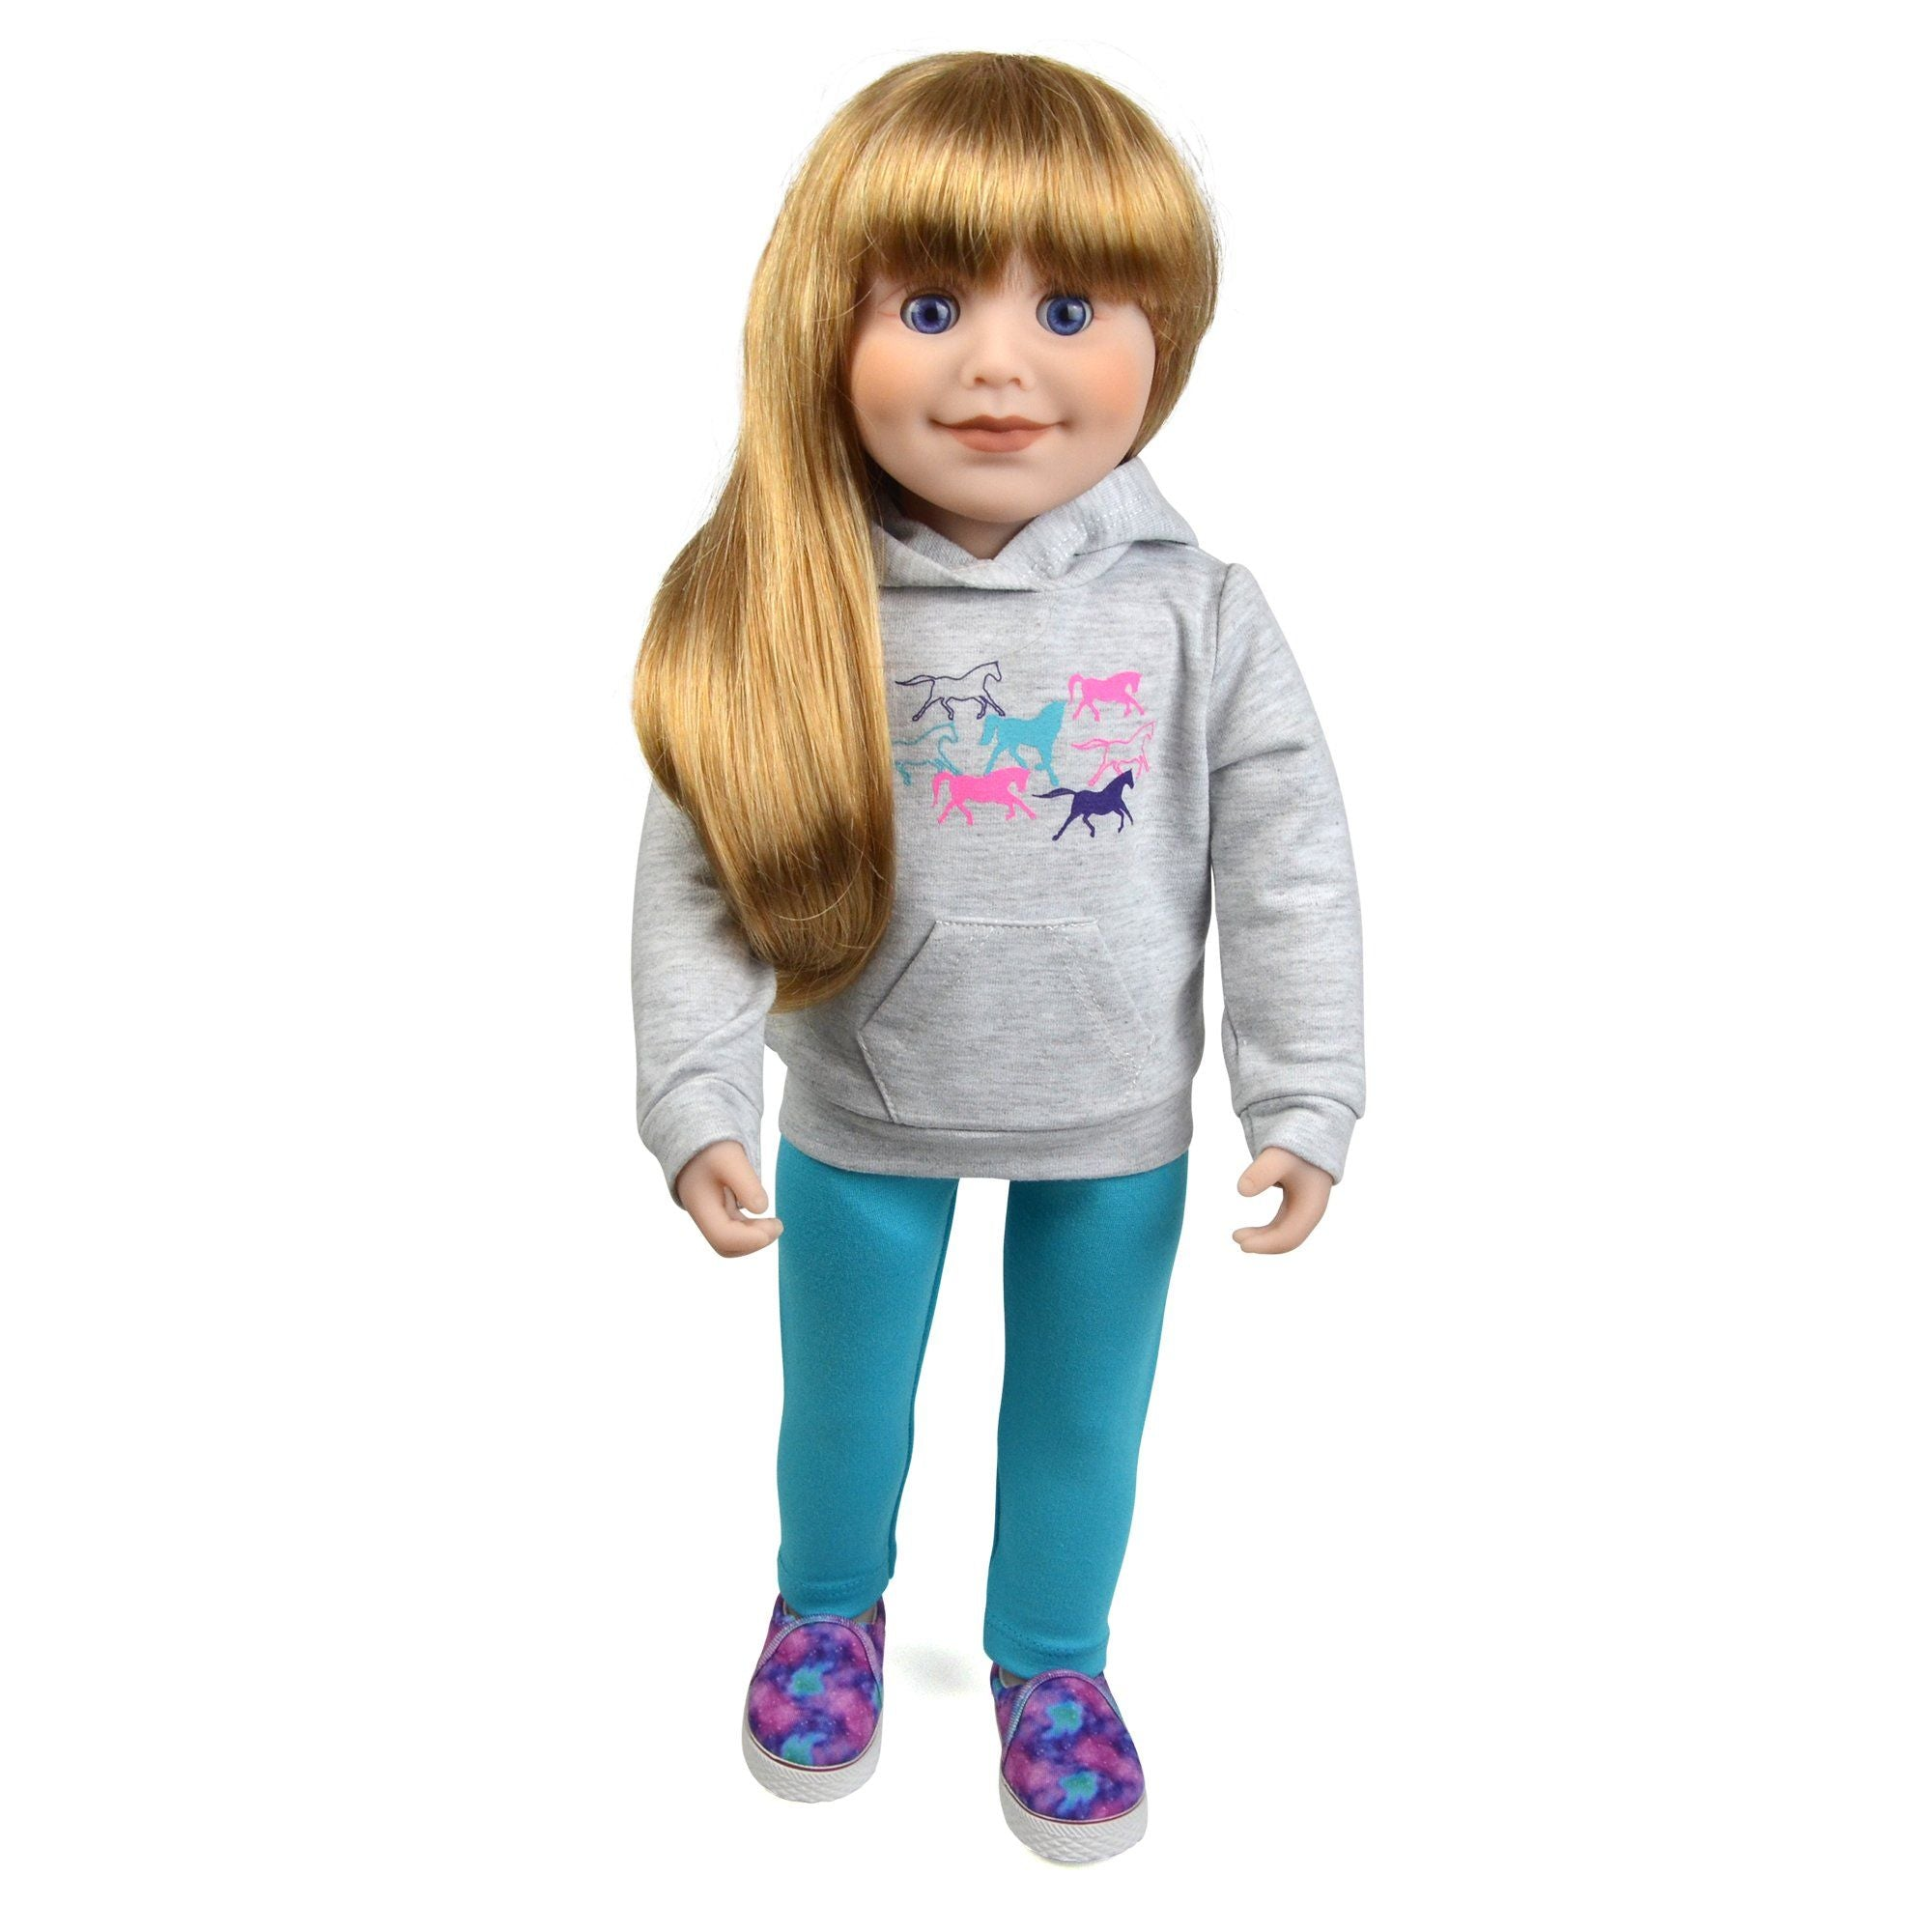 18 inch doll wearing grey horse print hood, colourful slip-on shoes, aqua leggings Maplelea